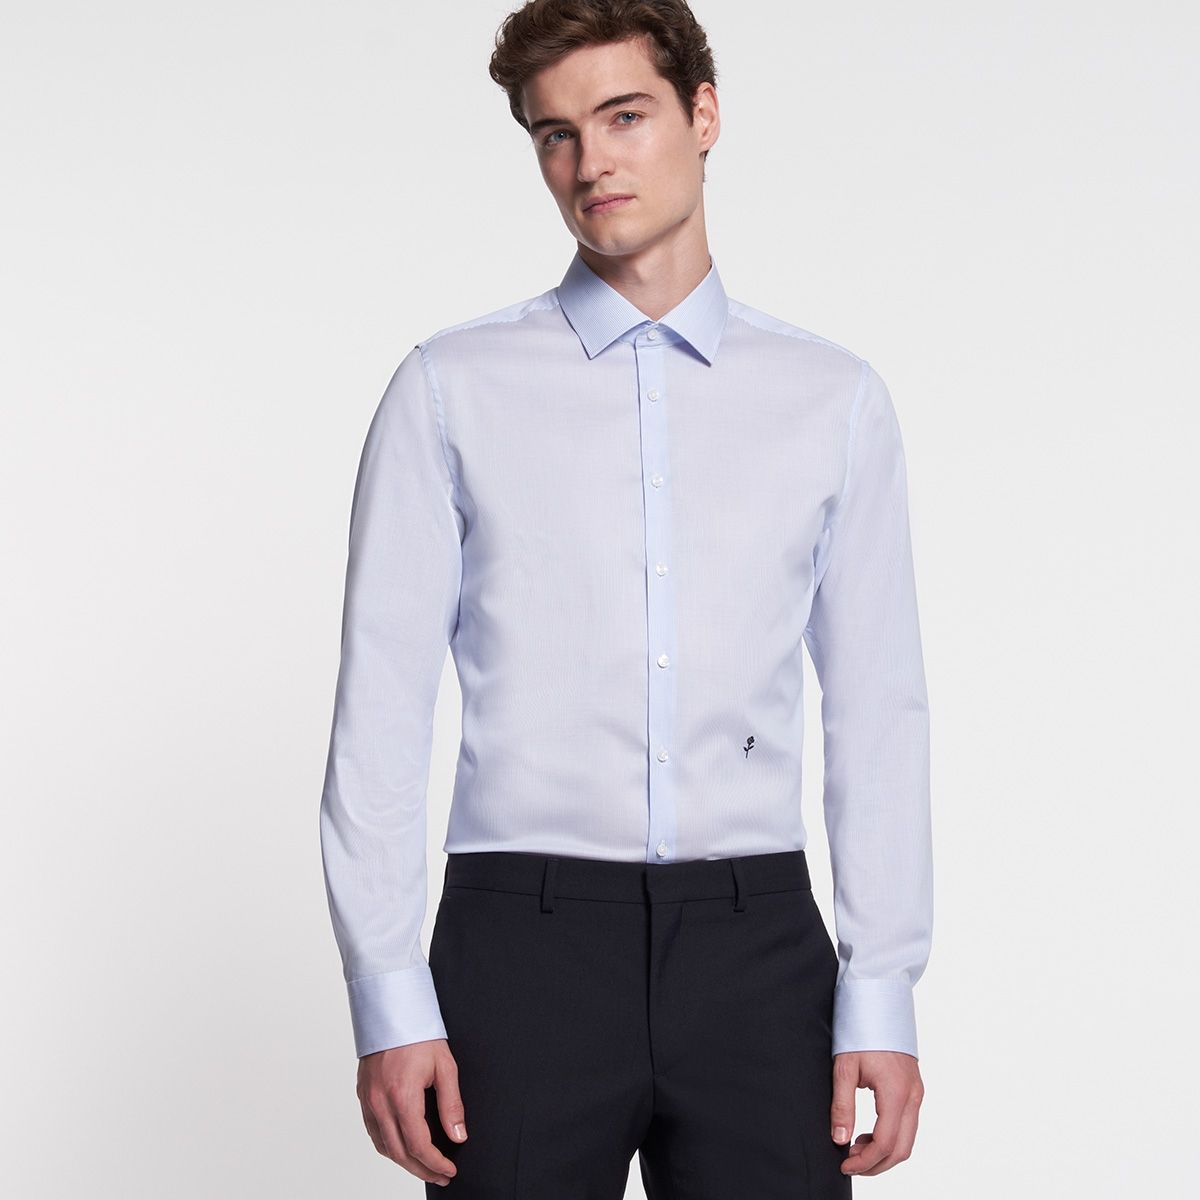 Chemise slim Collector fines  rayures bleu ciel